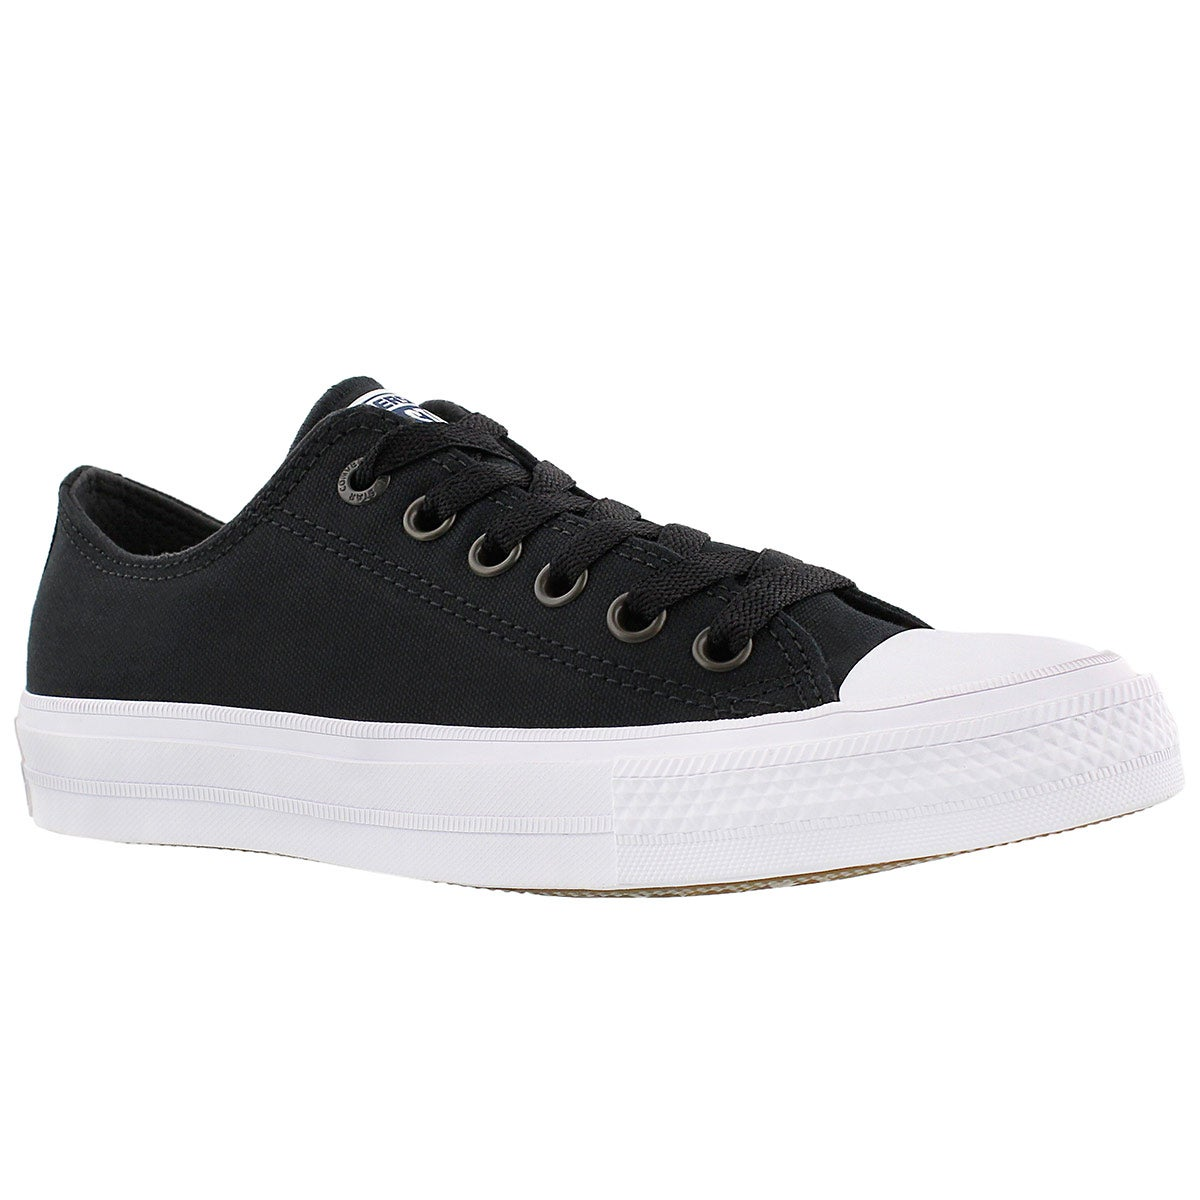 Women's CHUCK II VIZ FLOW black sneakers